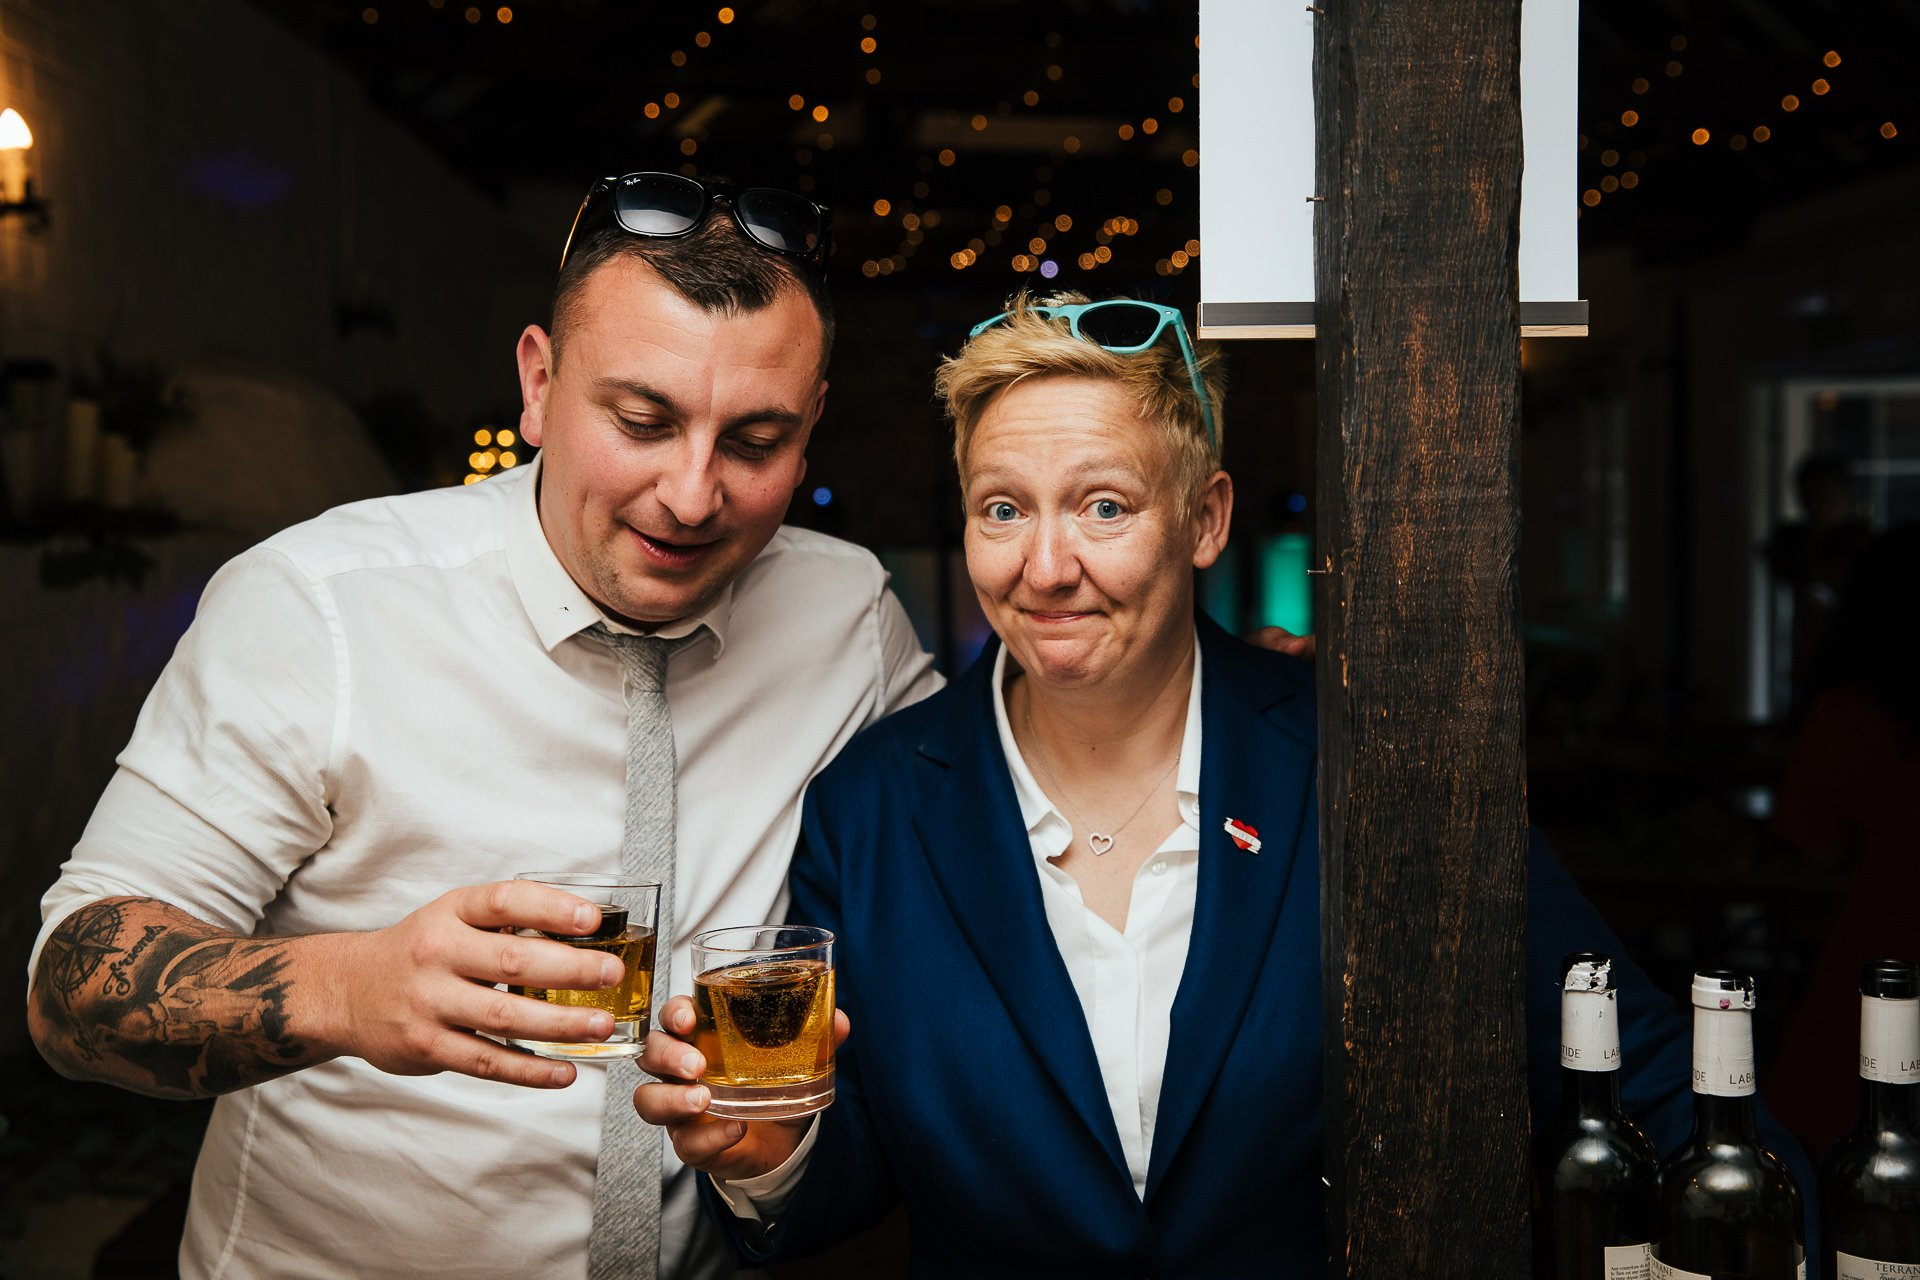 Couple raising a toast during wedding reception at The Bull